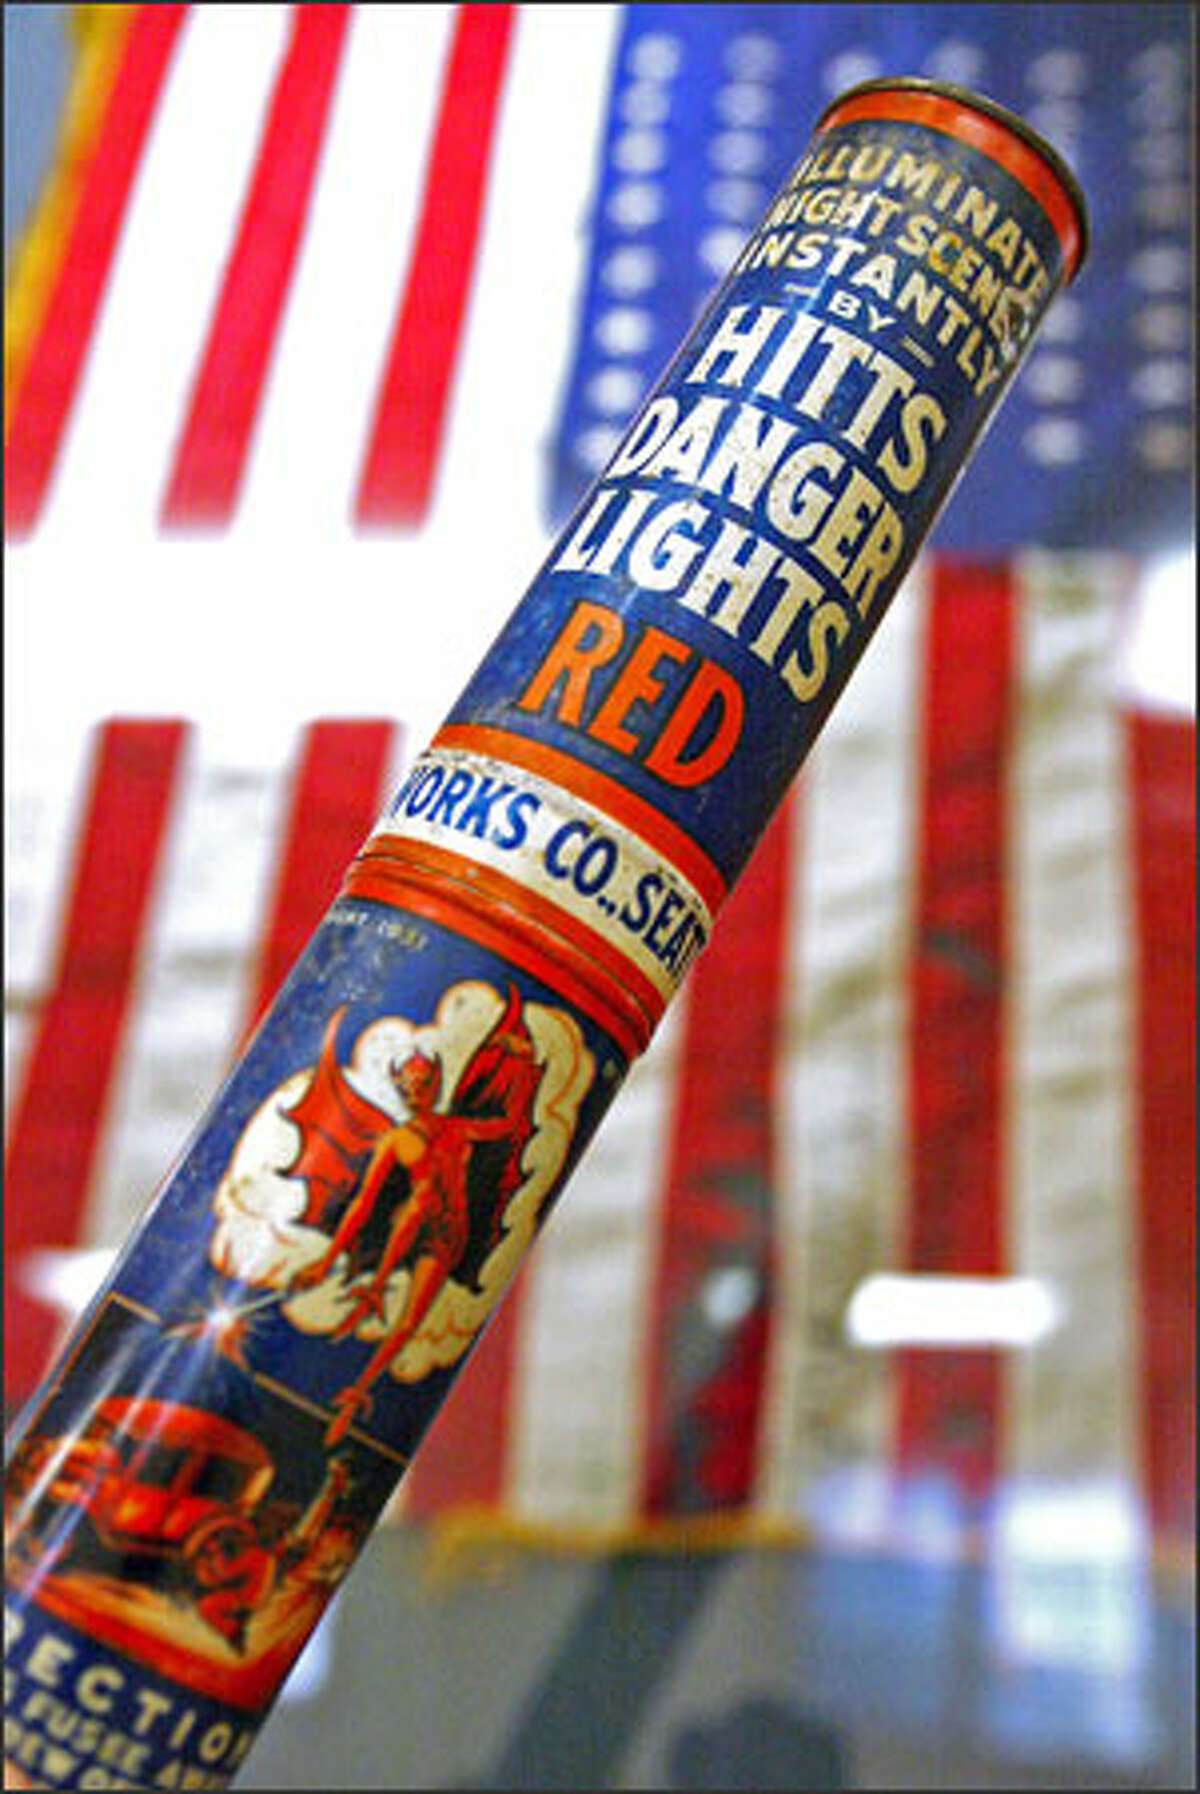 A flare produced by the Hitt Fireworks Co. is on display at the Columbia City Historical Society, along with other artifacts from what once was the largest fireworks manufacturer on the West Coast.